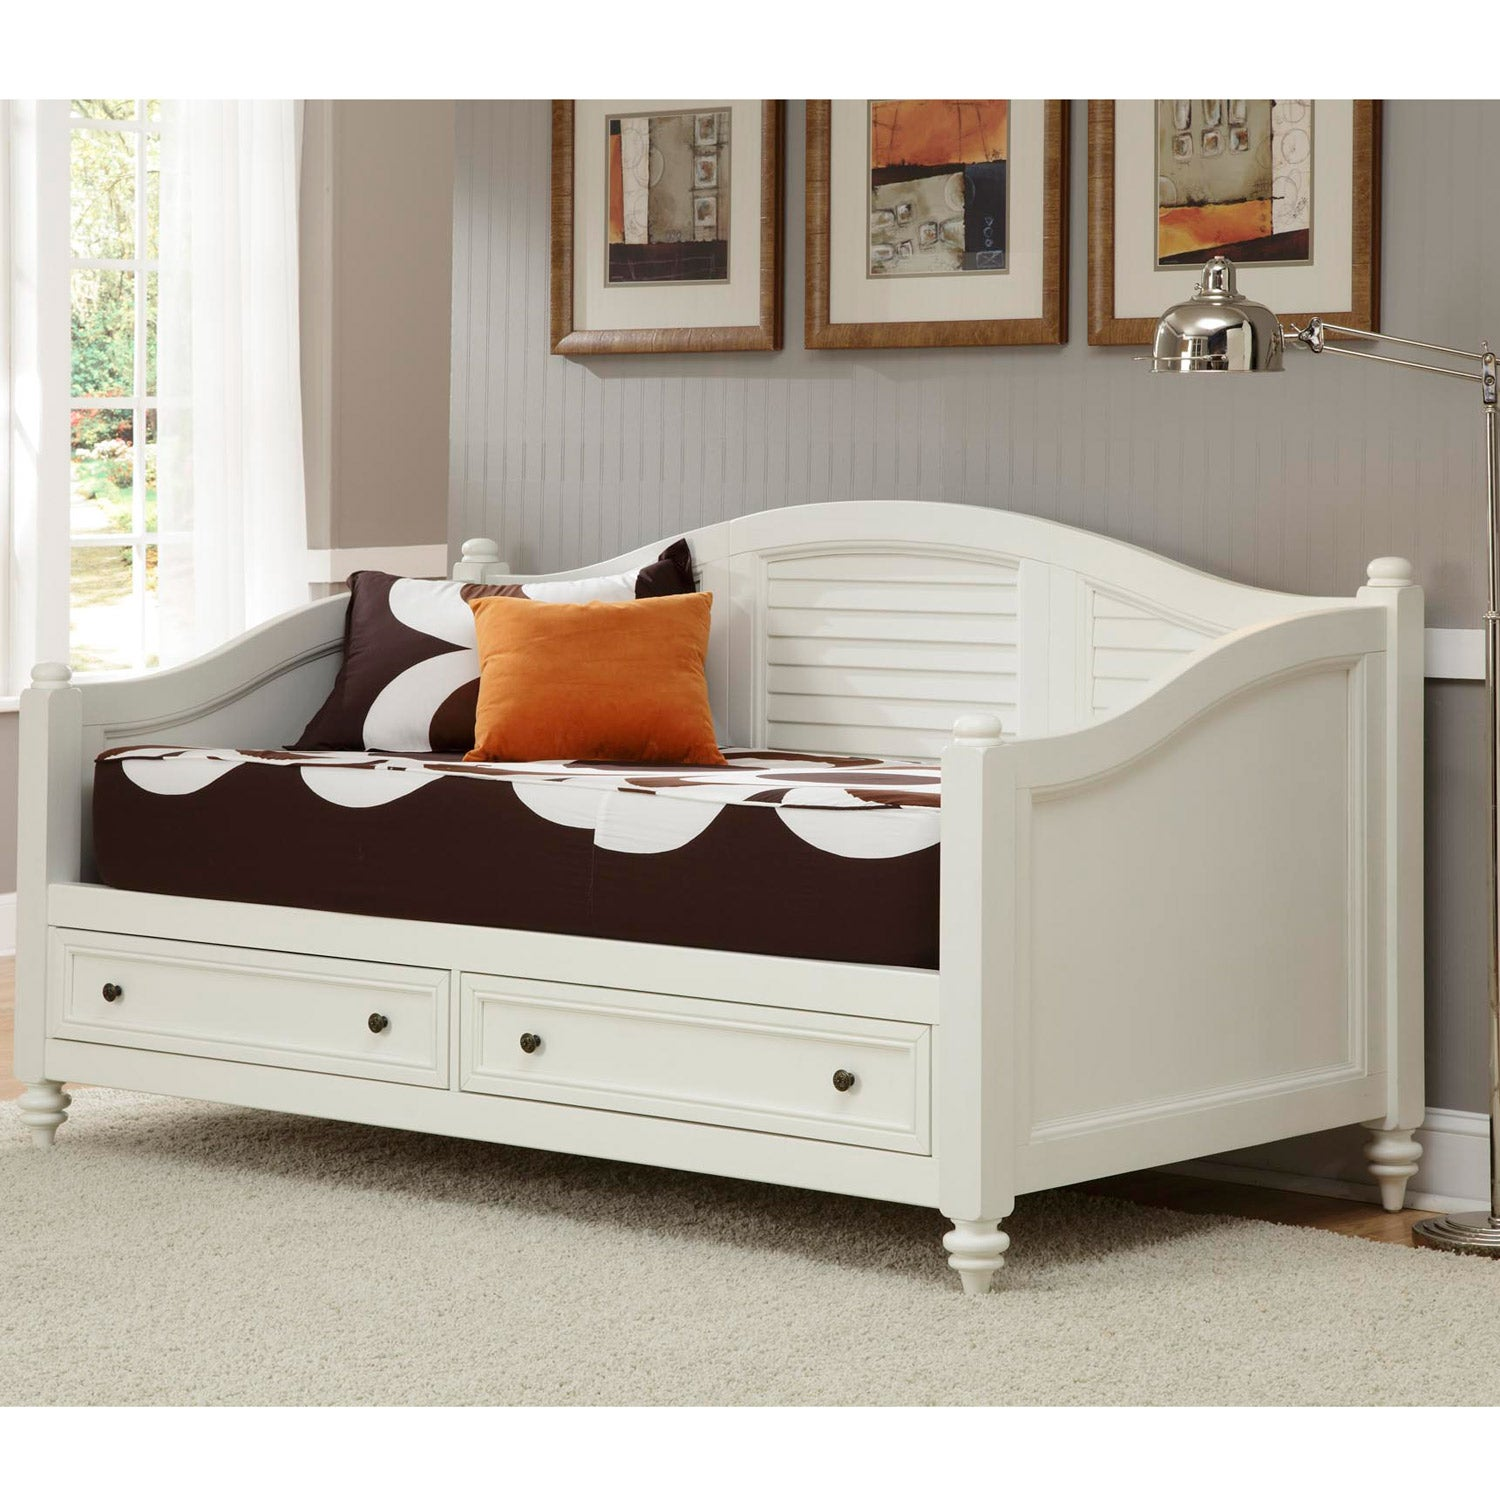 Home Styles Bermuda Brushed White Finish Twin size DayBed  : Bermuda Brushed White Finish Twin size DayBed L14270802 from www.overstock.com size 1500 x 1500 jpeg 238kB